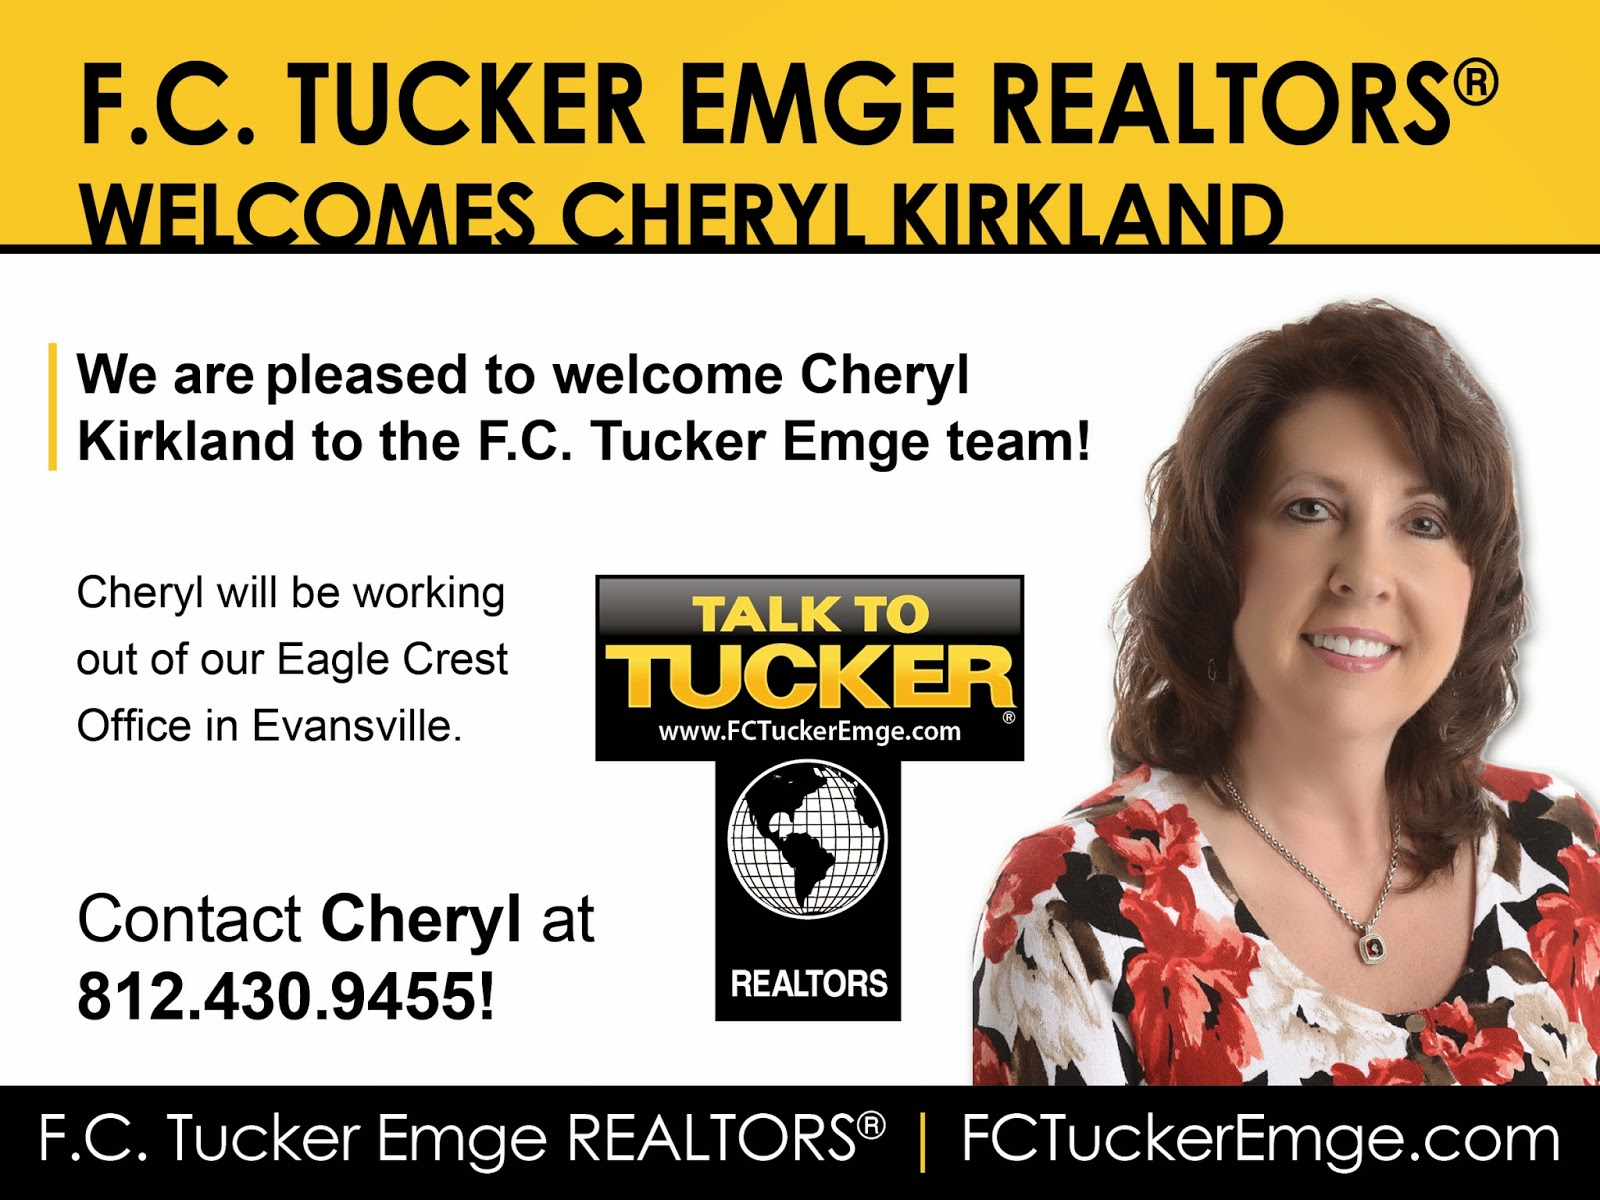 Welcome Cheryl Kirkland to F.C. Tucker Emge REALTORS®!